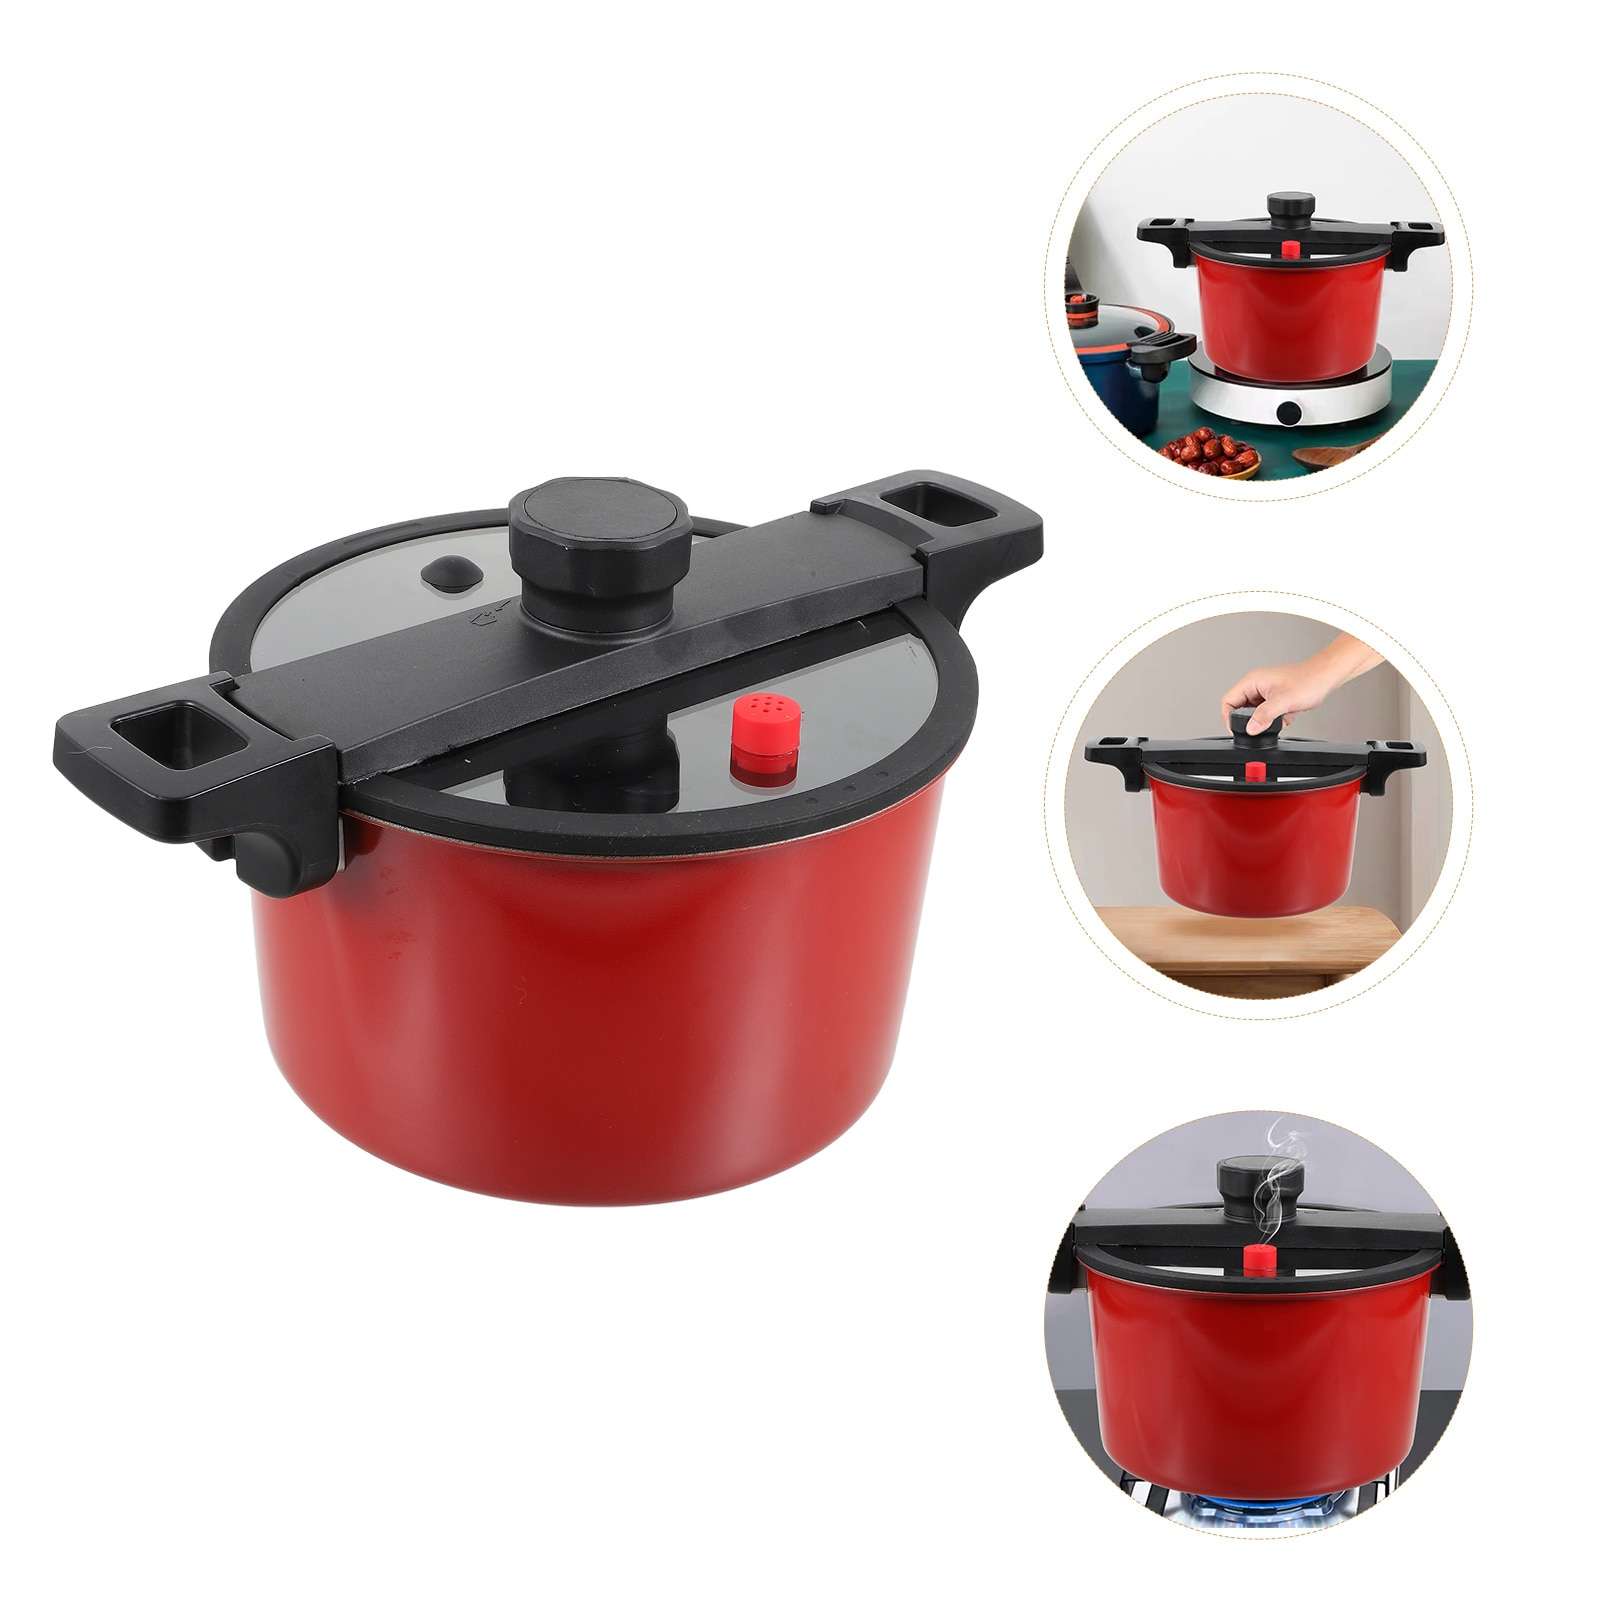 1Pc Low Pressure Cooker Low Pressure Pot with Lid Practical 6L Cooking Pot